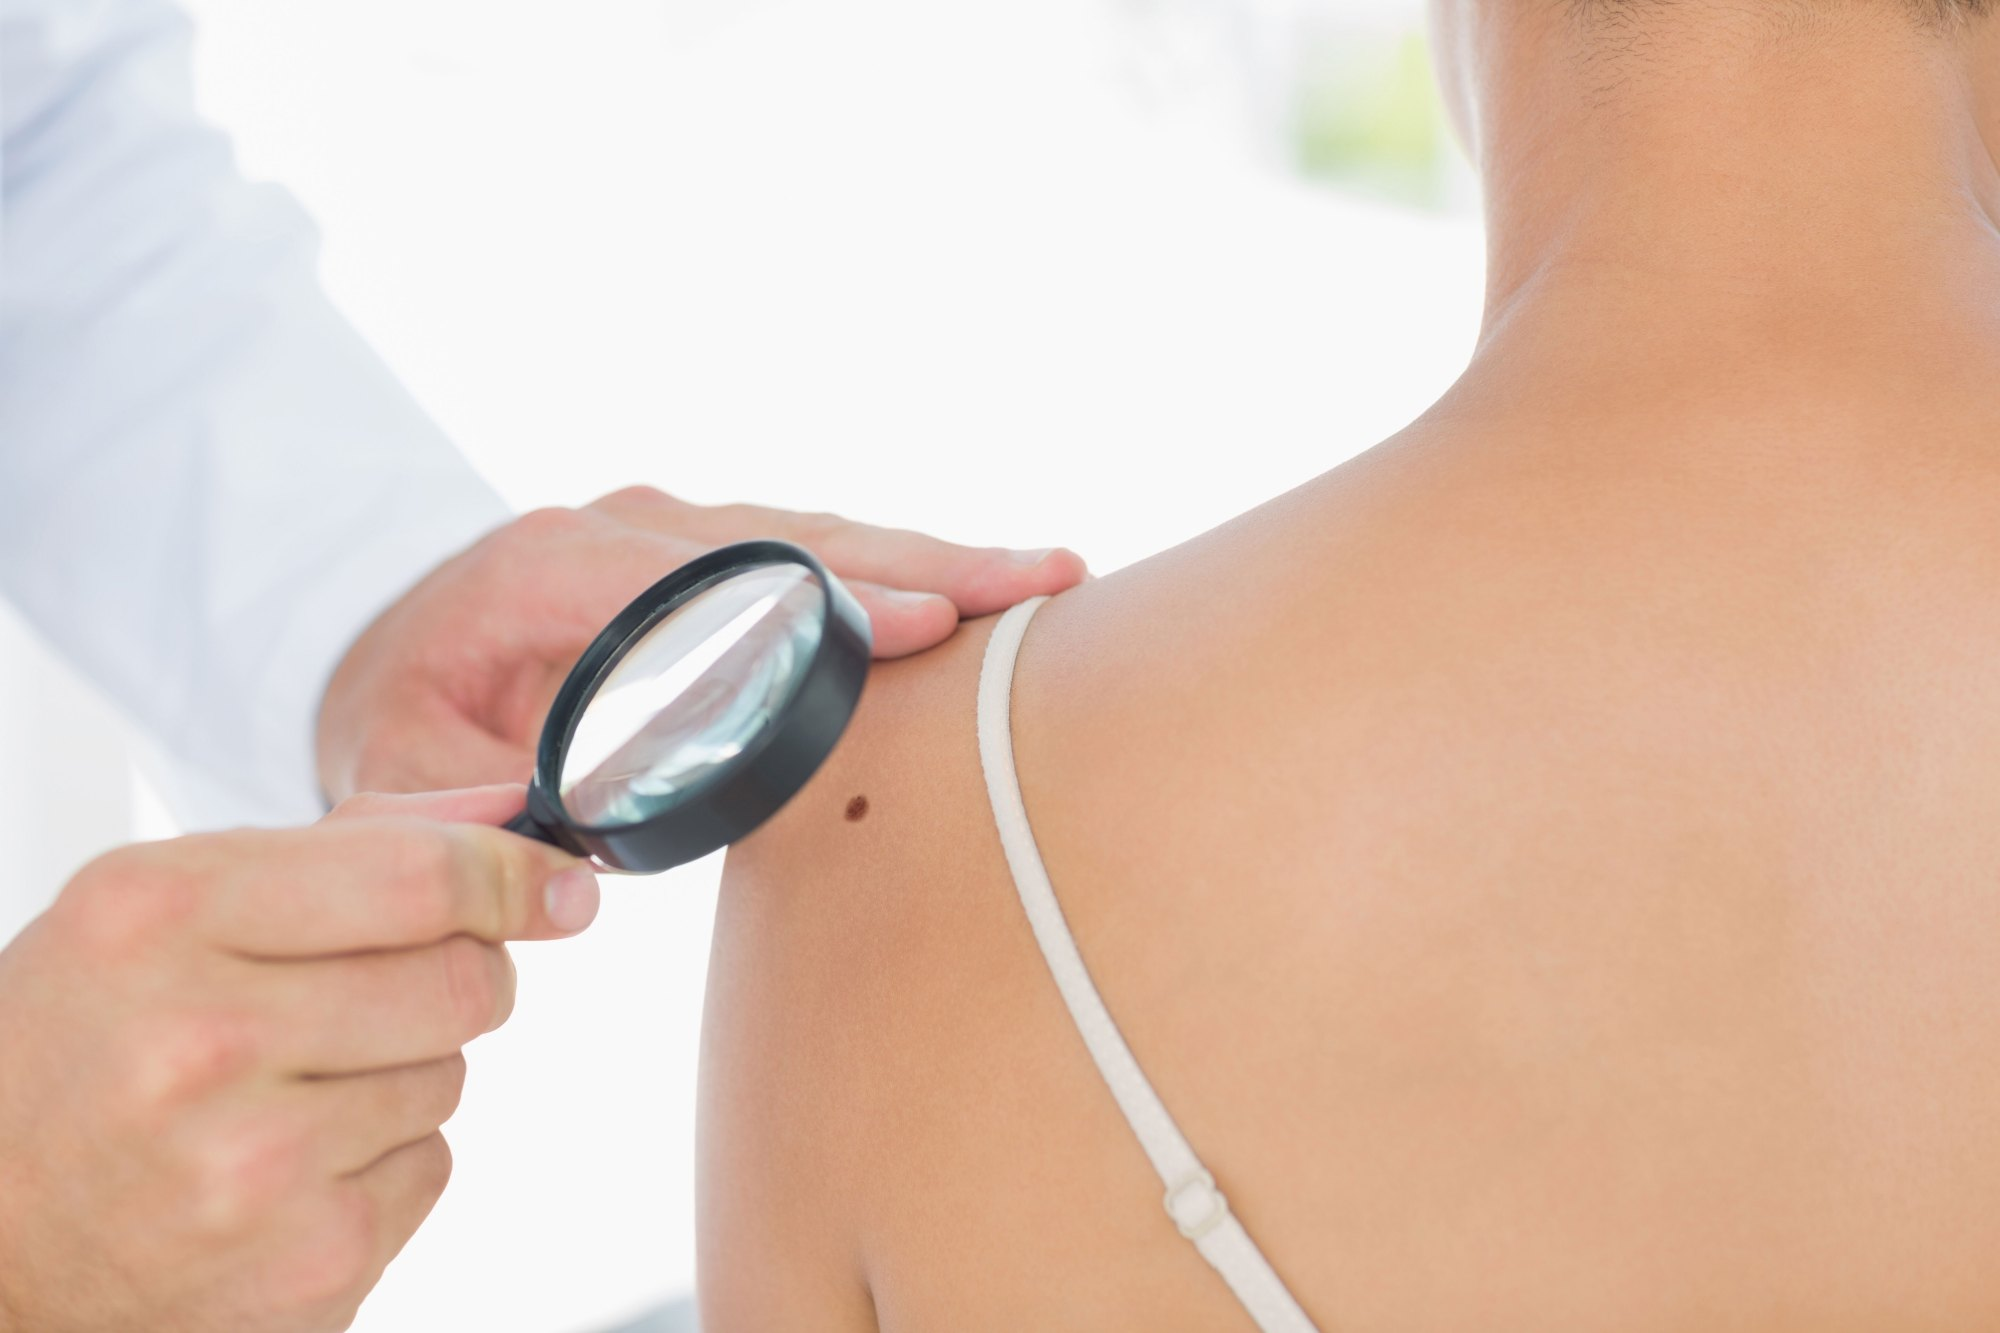 hight resolution of this is not a question that we at sunflower dermatology take lightly one of our primary missions is the eradication of skin cancer